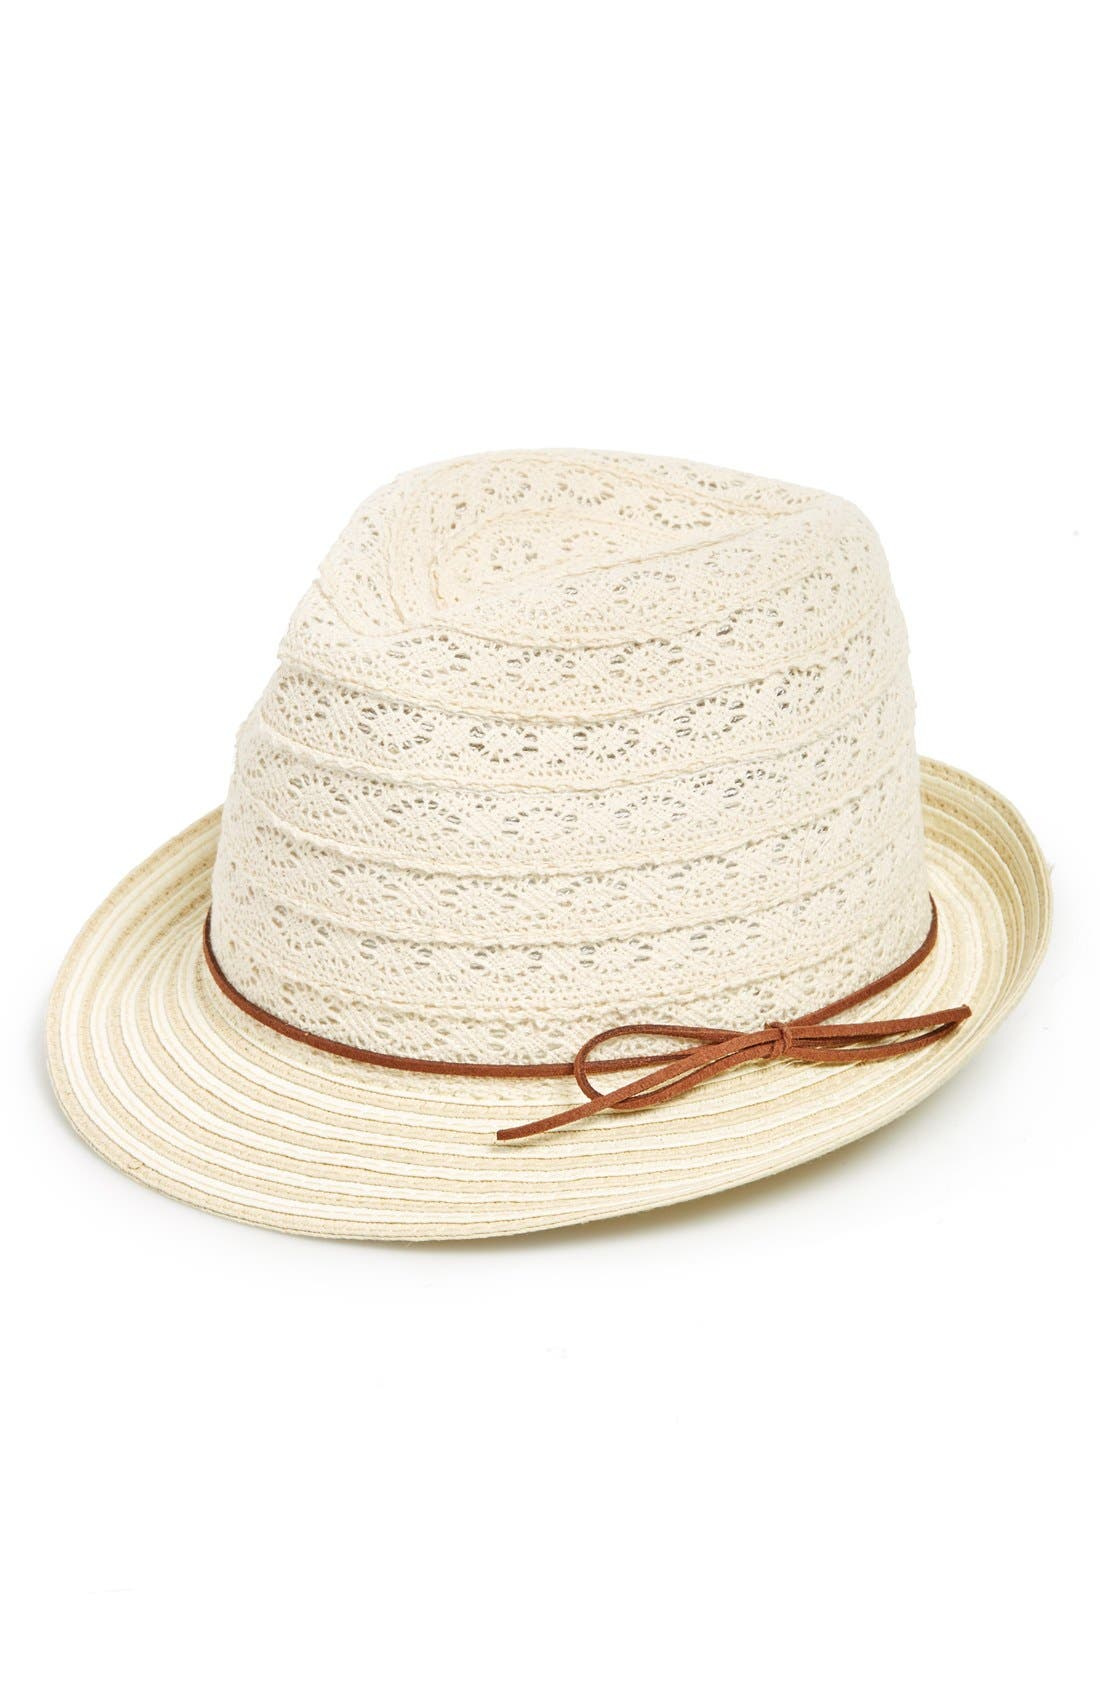 Alternate Image 1 Selected - Phase 3 Lace & Straw Trilby Hat